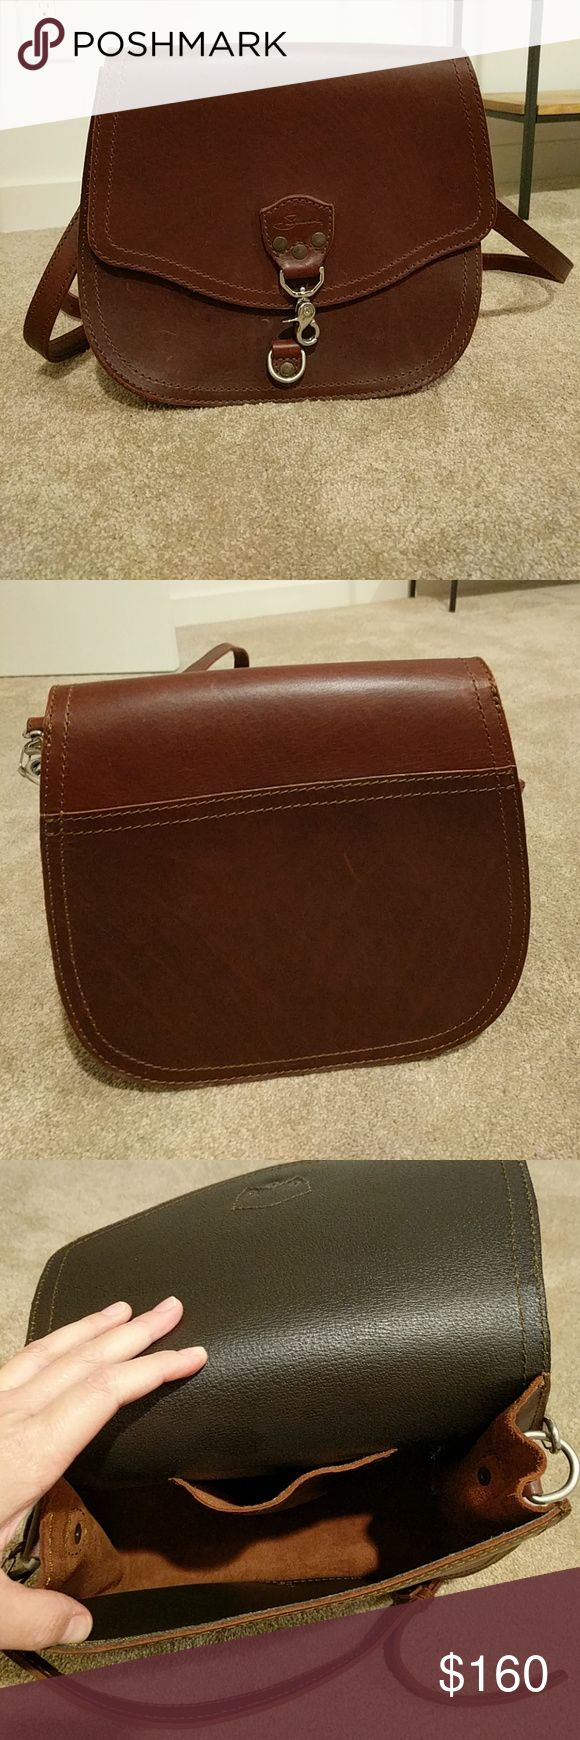 Saddleback Leather Hobo Bag Dark Coffee Brown bag from the Saddleback Leather Company.  This item can be worn cross-body or over the shoulder.  Item has only been used once or twice, very good condition and durable. saddleback leather co Bags Hobos